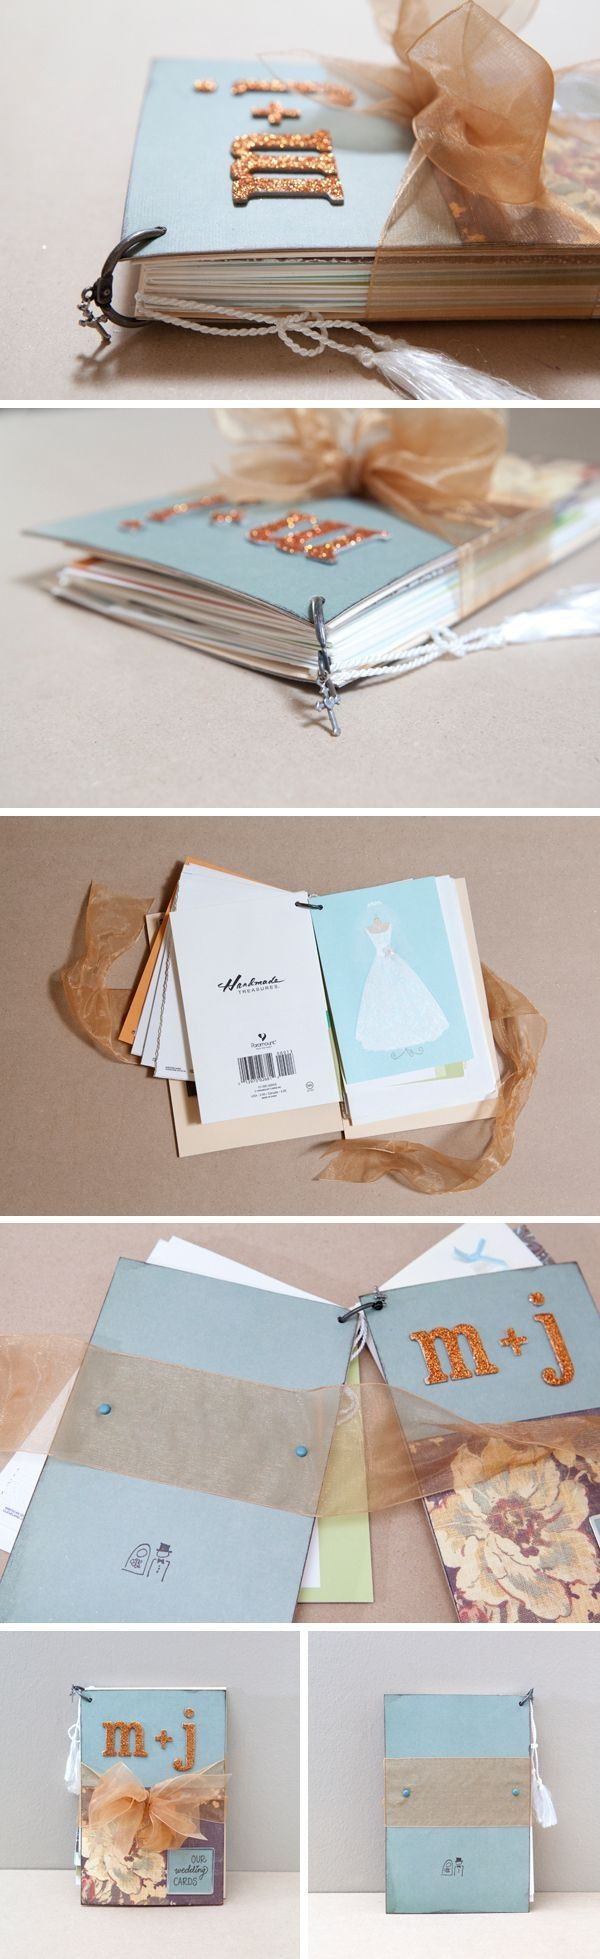 How to diy an adorable album to save special greeting cards